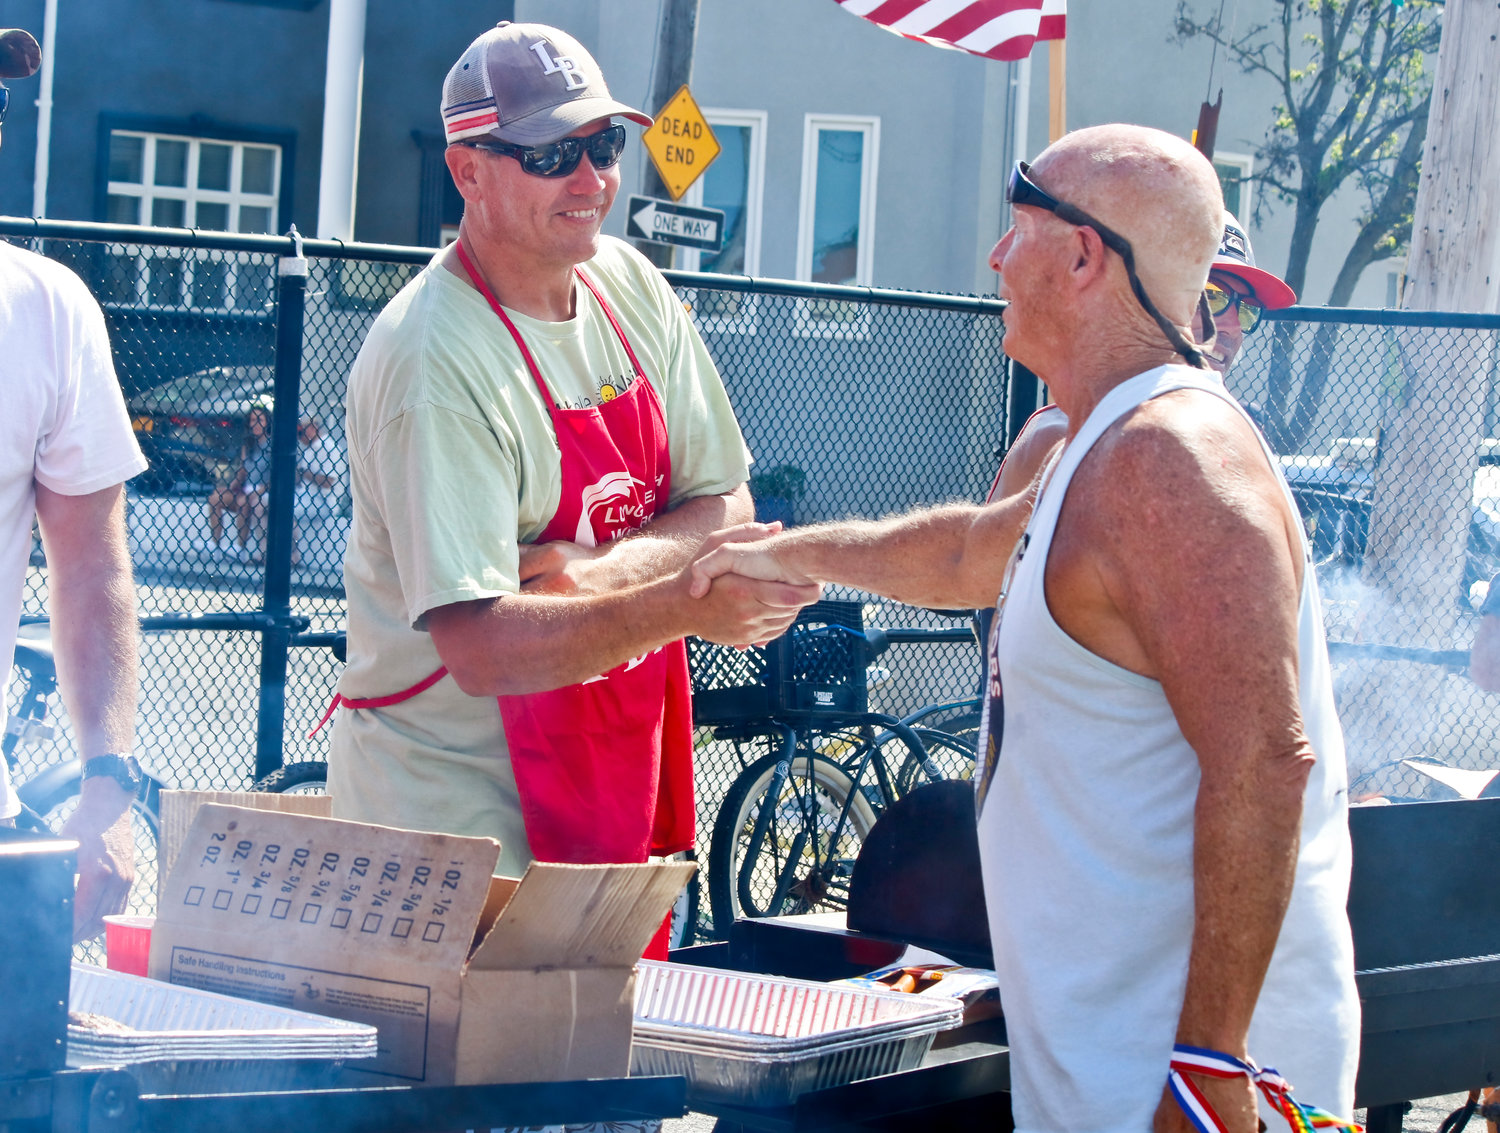 Cook Billy Duffy, left, and other FDNY members prepared barbecue for veterans and their families. Waterfront Warriors co-founder Jerry Snell thanked them for their services.